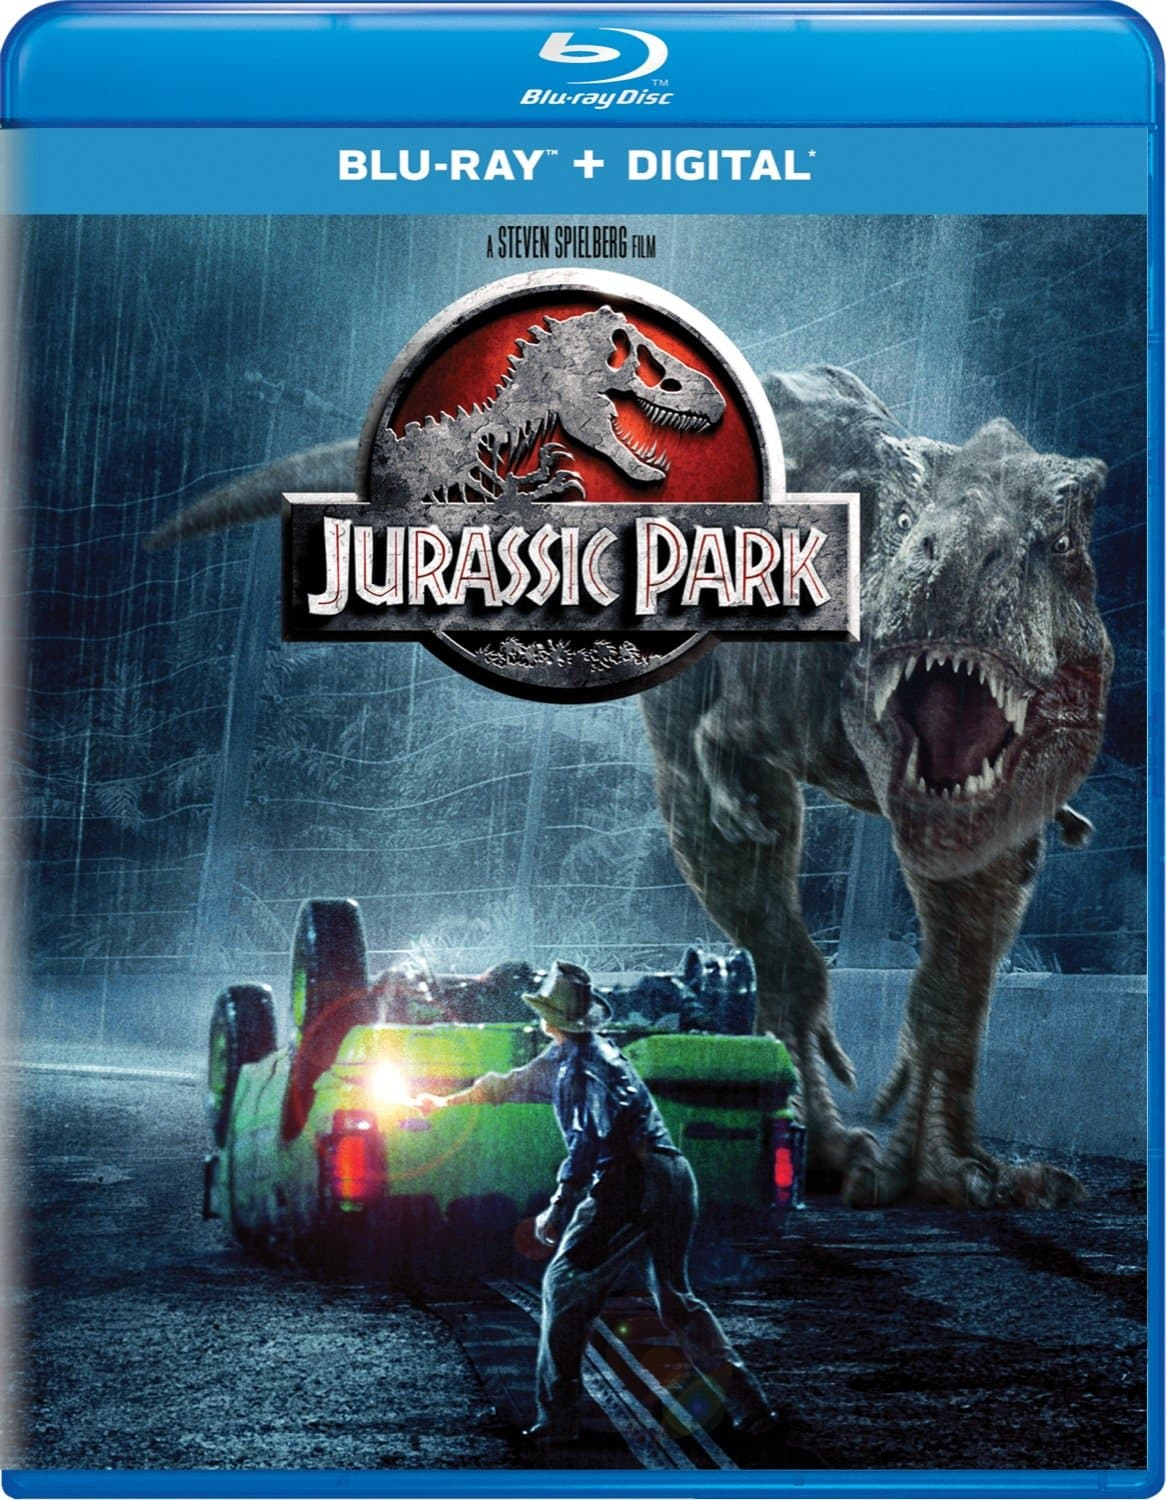 Jurassic Park (Blu-ray + Digital)